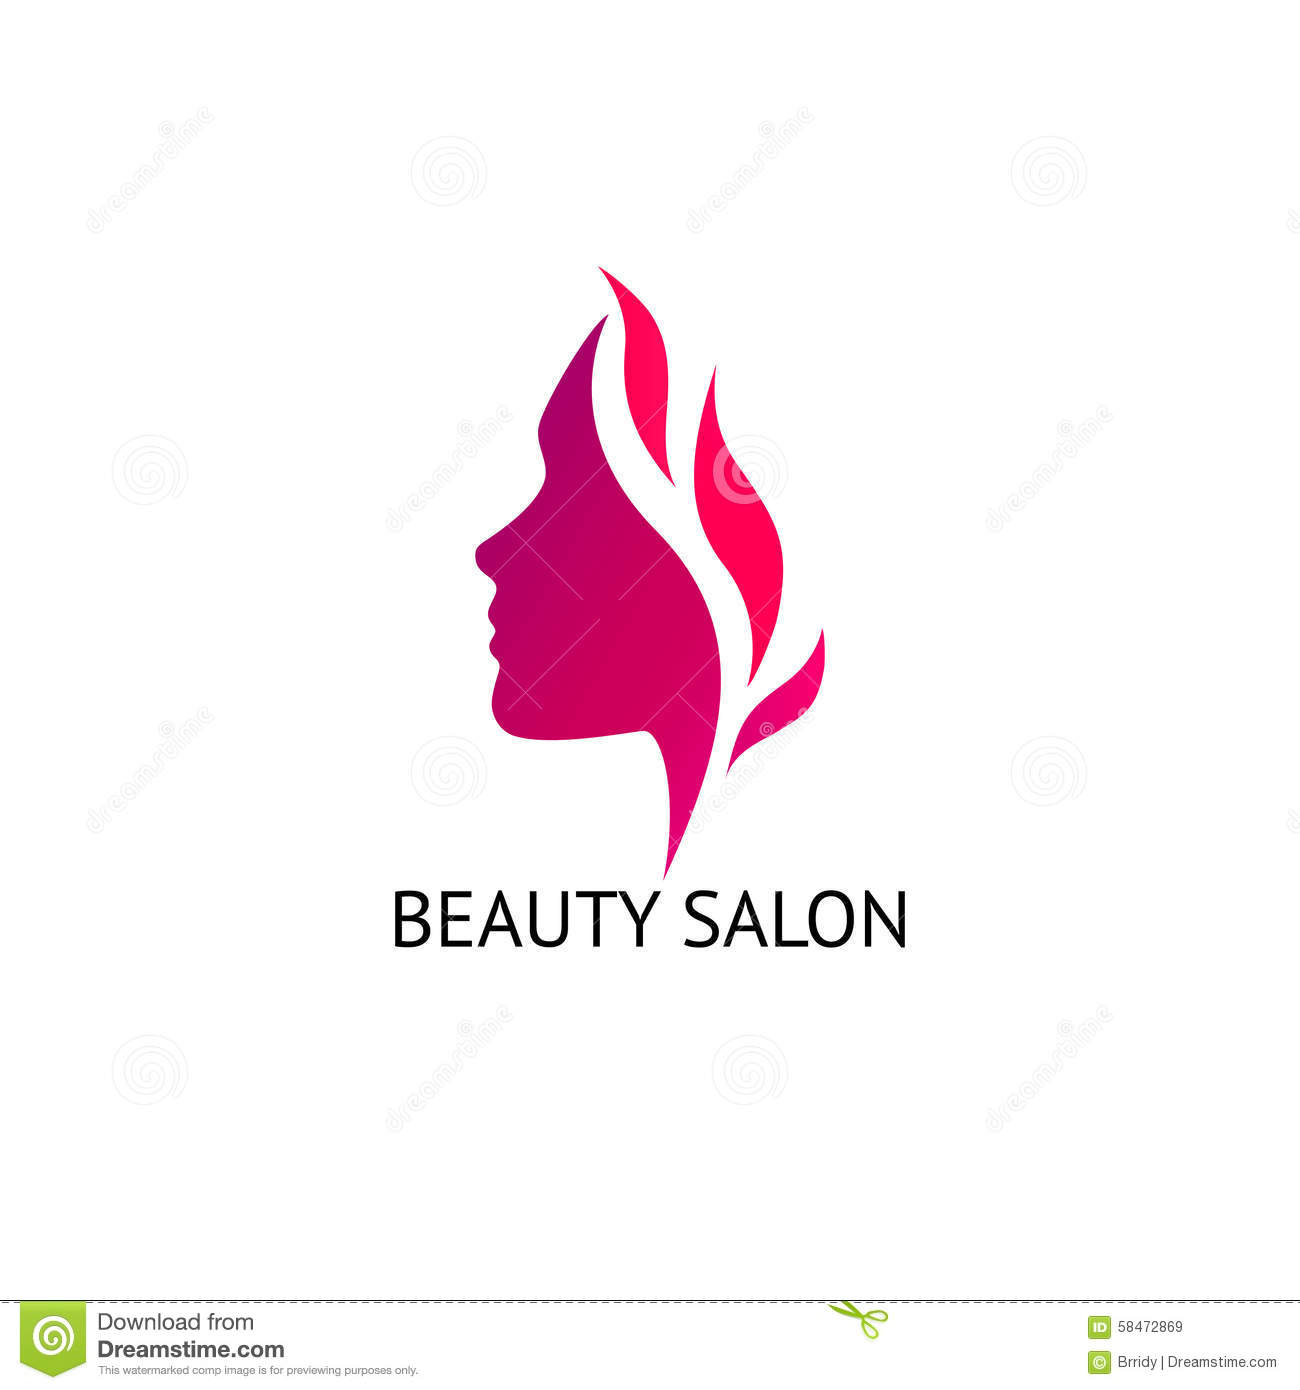 ... barber shops, massage, cosmetic and spa. Vector logo design template